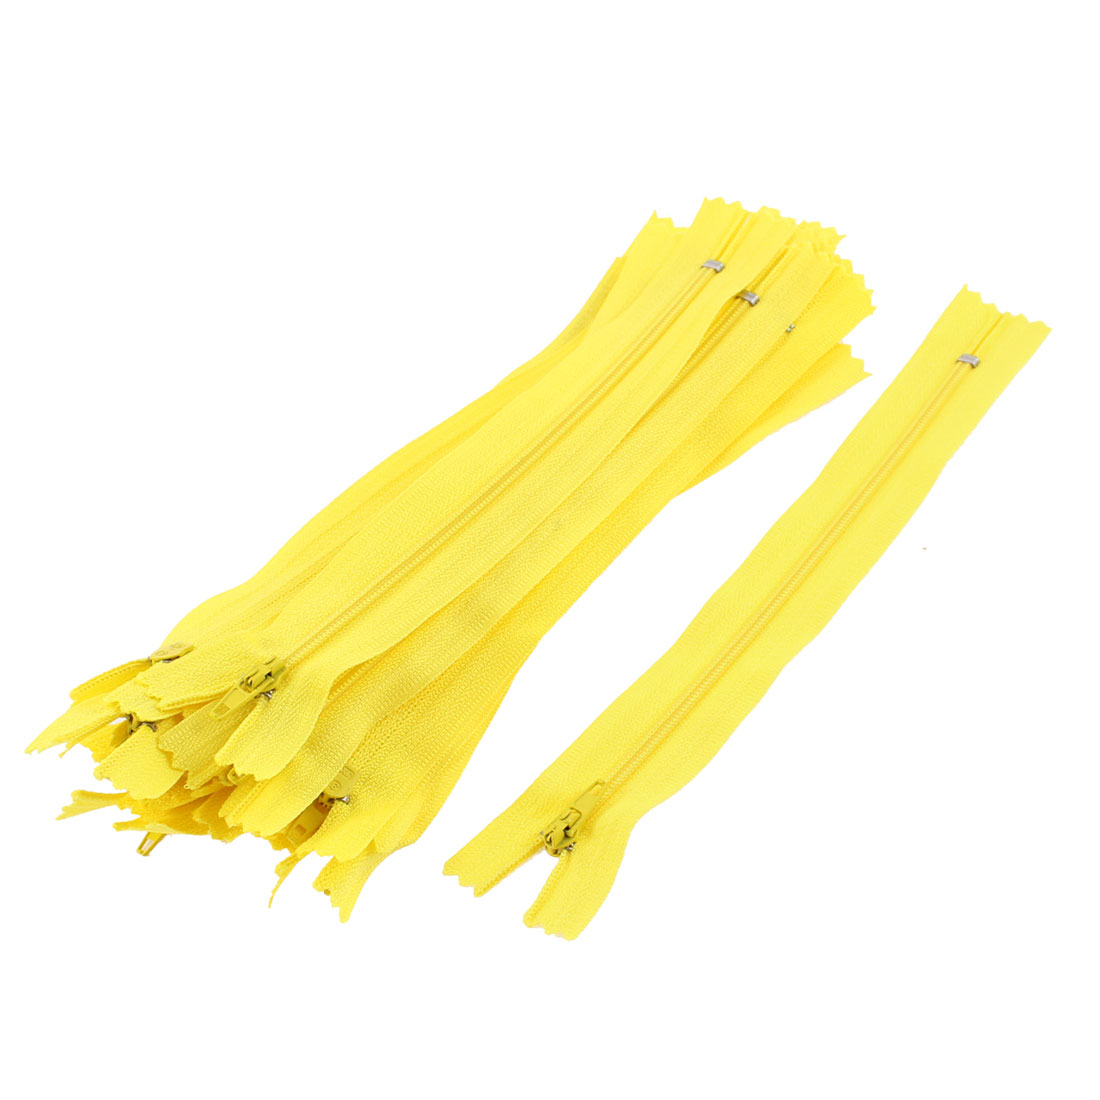 Dress Pants Closed End Nylon Zippers Tailor Sewing Craft Tool Yellow 18cm 20 Pcs